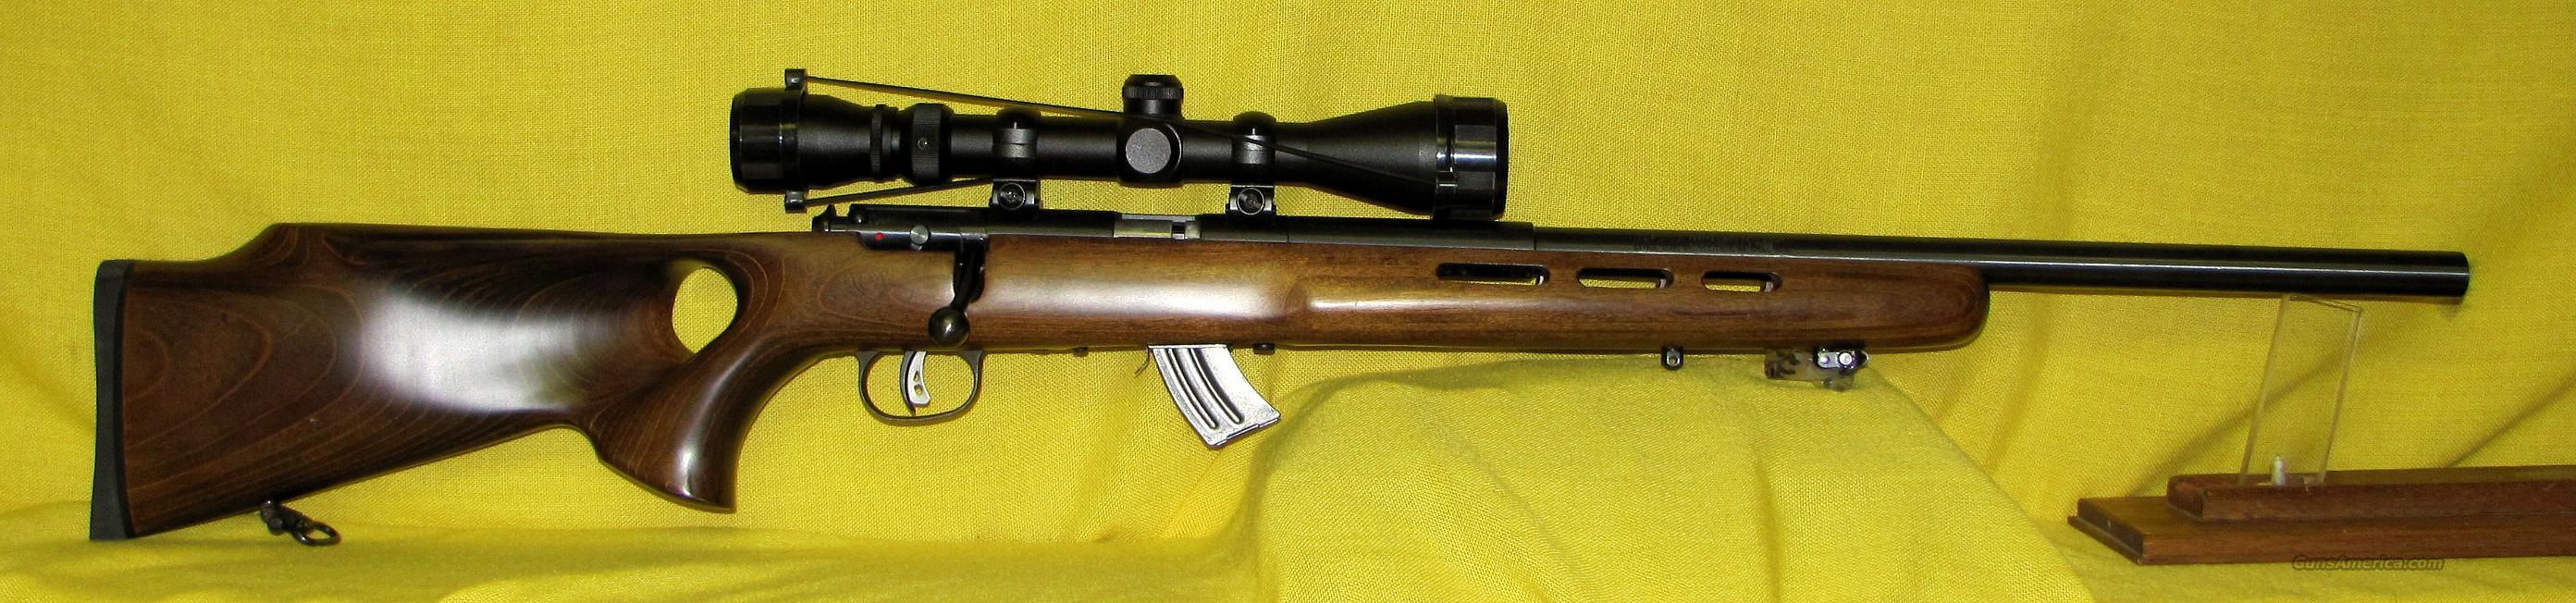 "SAVAGE MARK II .22LR 20"" FLOATING BARREL  Guns > Rifles > Savage Rifles > Accutrigger Models > Sporting"